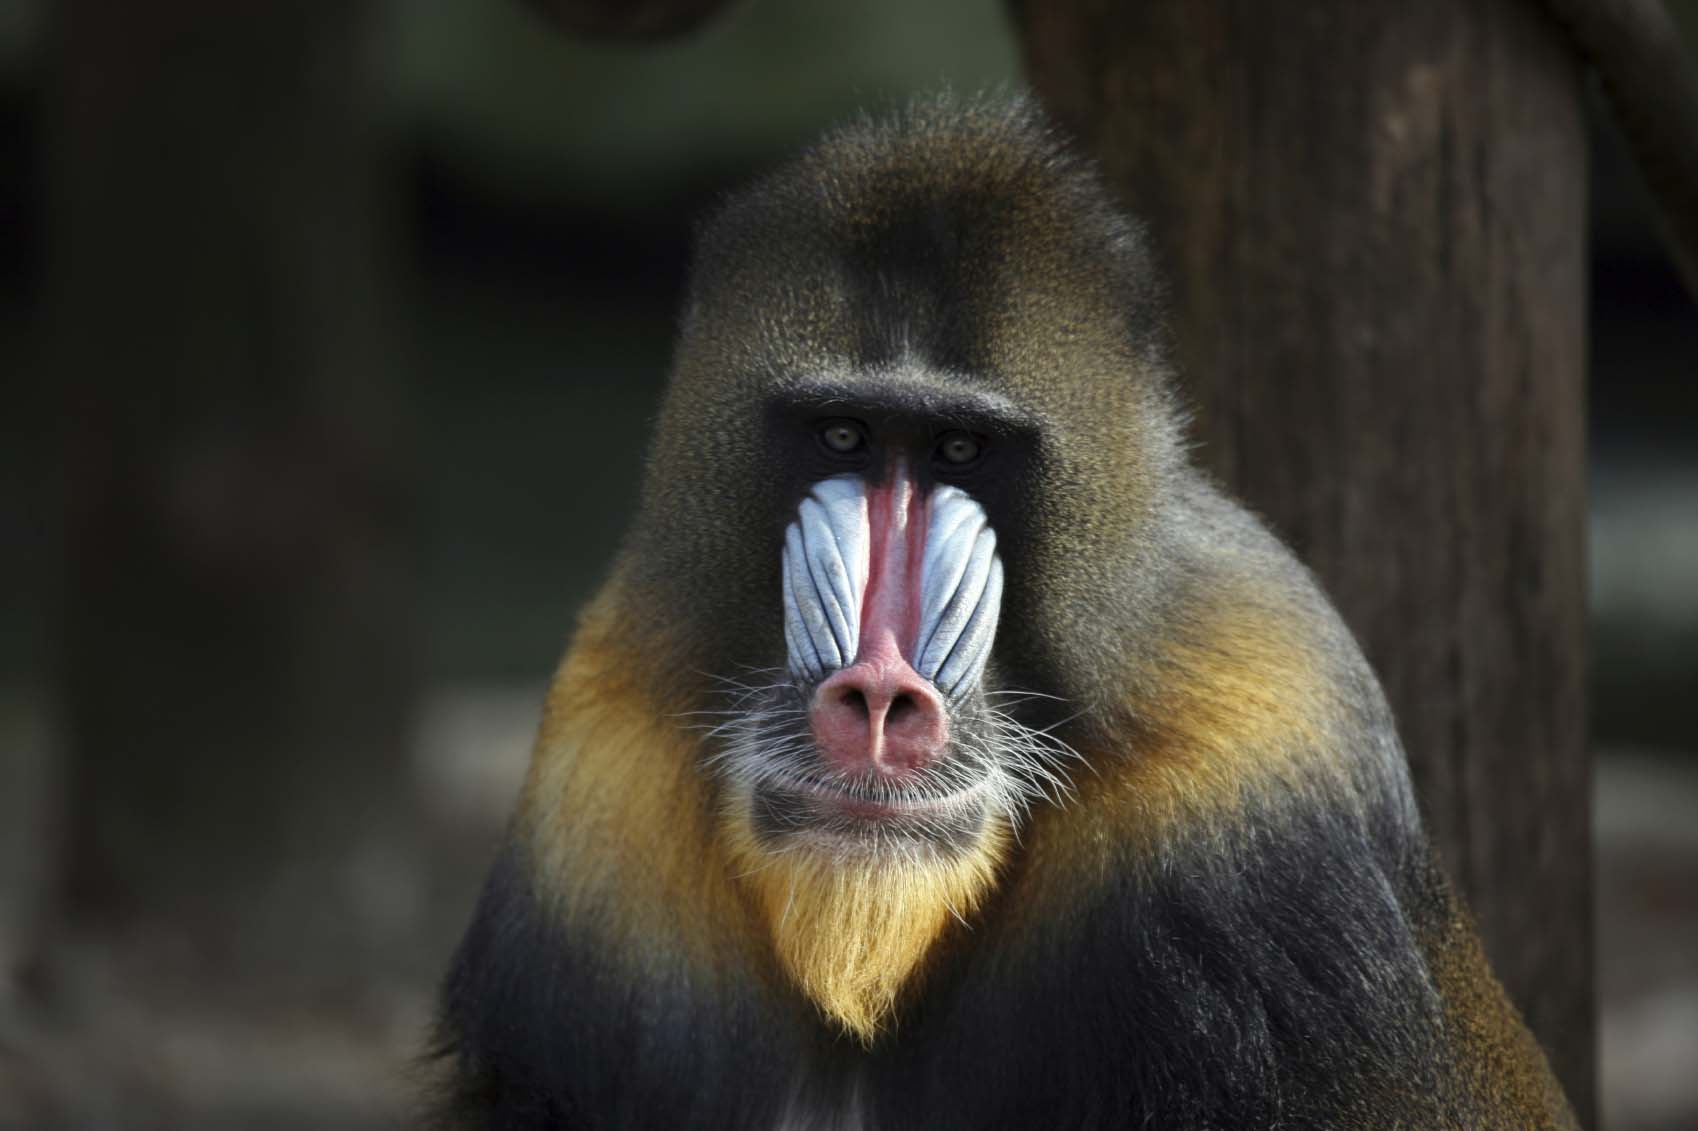 animals causes of color tawny and brown shades of fur on this mandrill contrast blue and red markings in areas devoid of fur